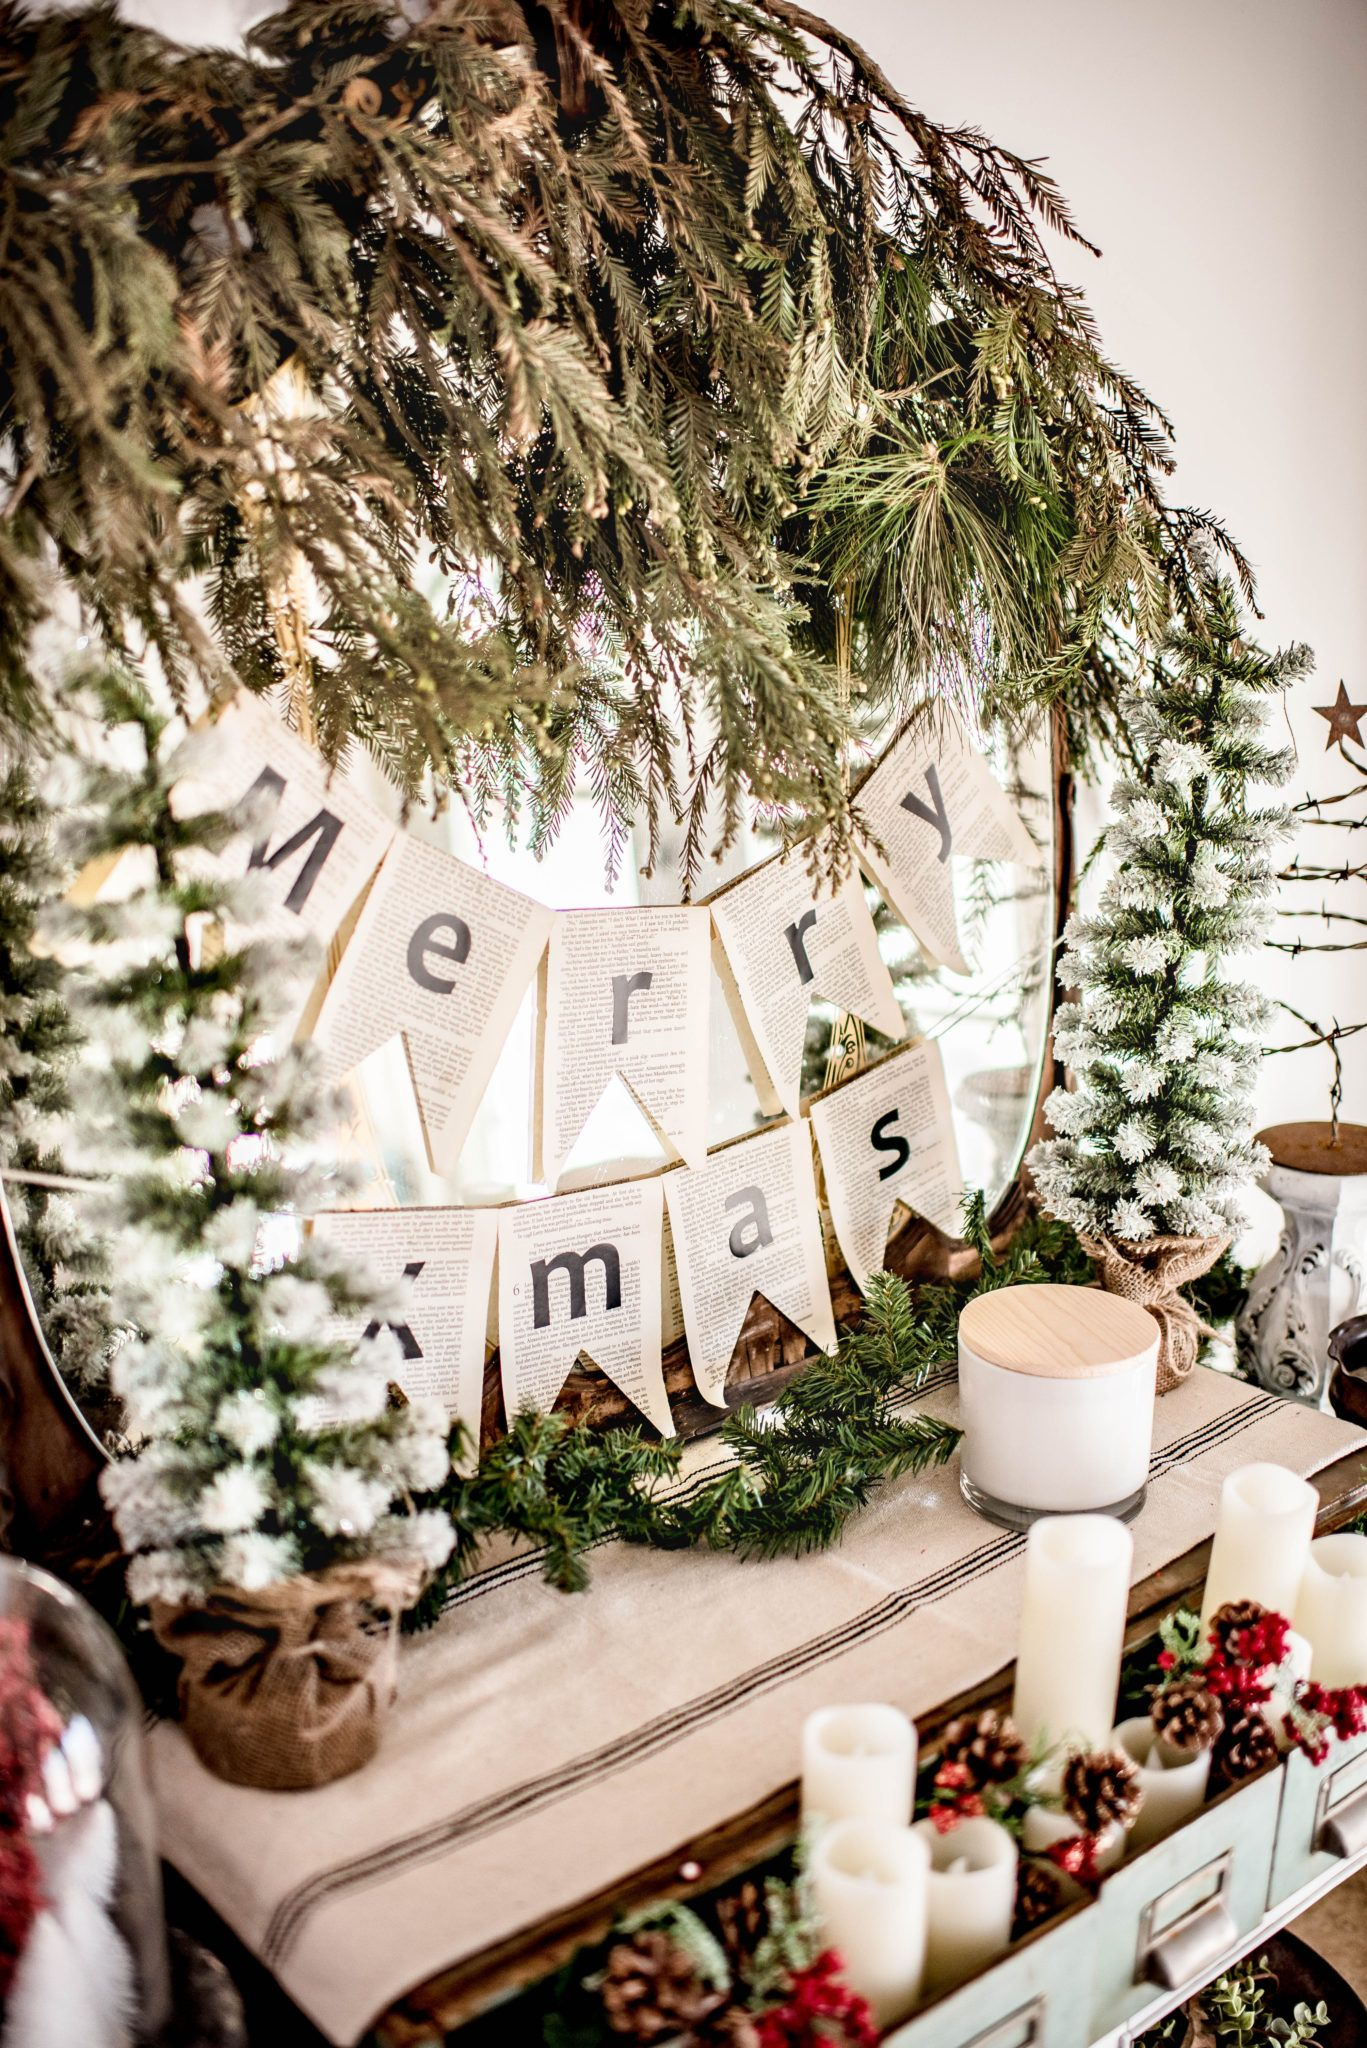 Corey Here From Hudson Farmhouse My Buffalo Check Christmas Tree Was So Fun To Dollar Tree Christmas Decor Christmas Decorations Rustic Modern Christmas Decor